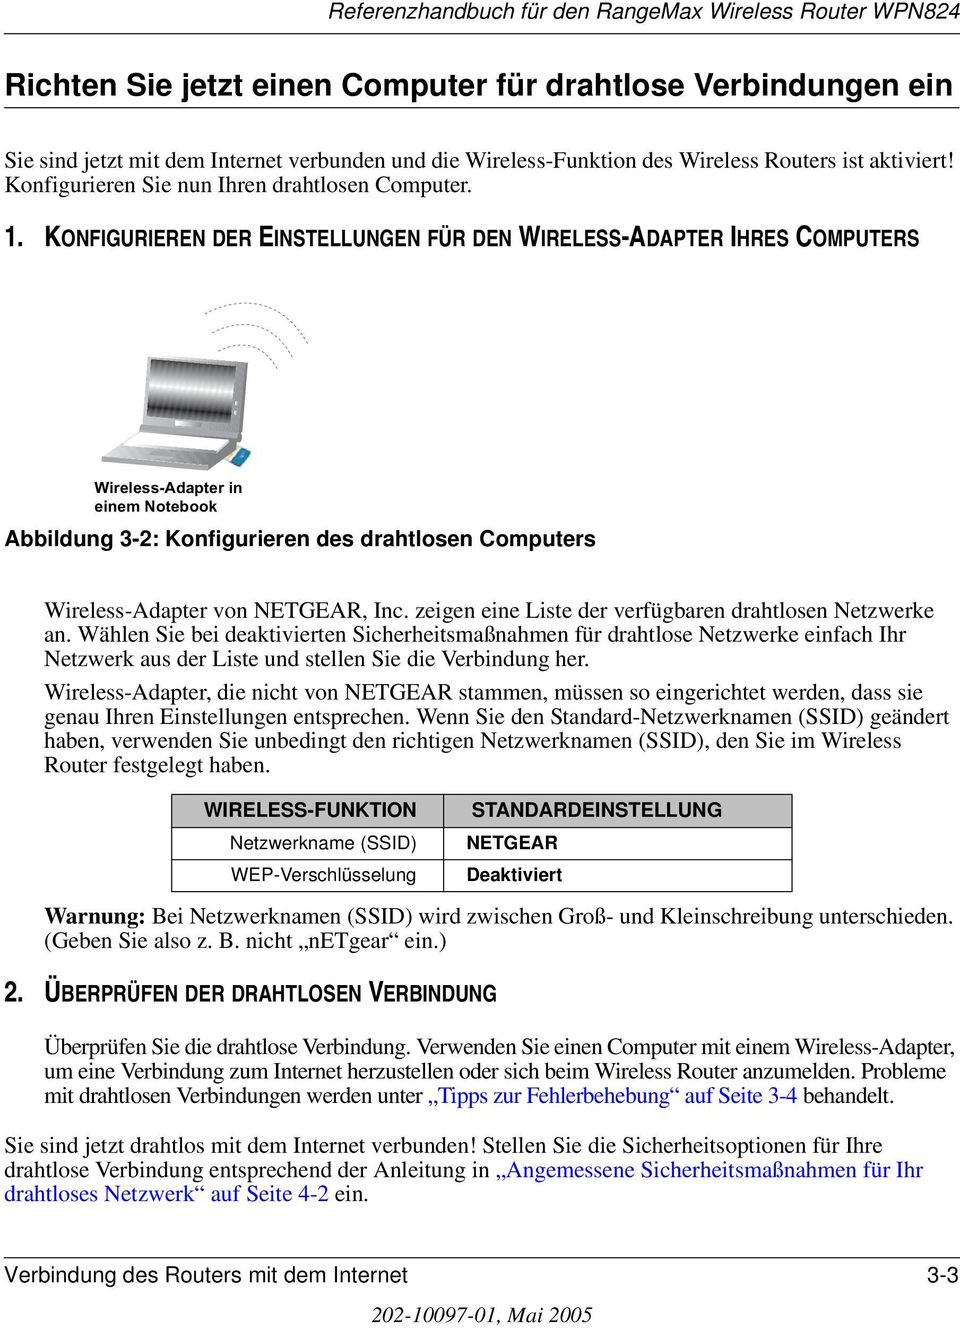 KONFIGURIEREN DER EINSTELLUNGEN FÜR DEN WIRELESS-ADAPTER IHRES COMPUTERS Abbildung 3-2: Konfigurieren des drahtlosen Computers Wireless-Adapter von NETGEAR, Inc.